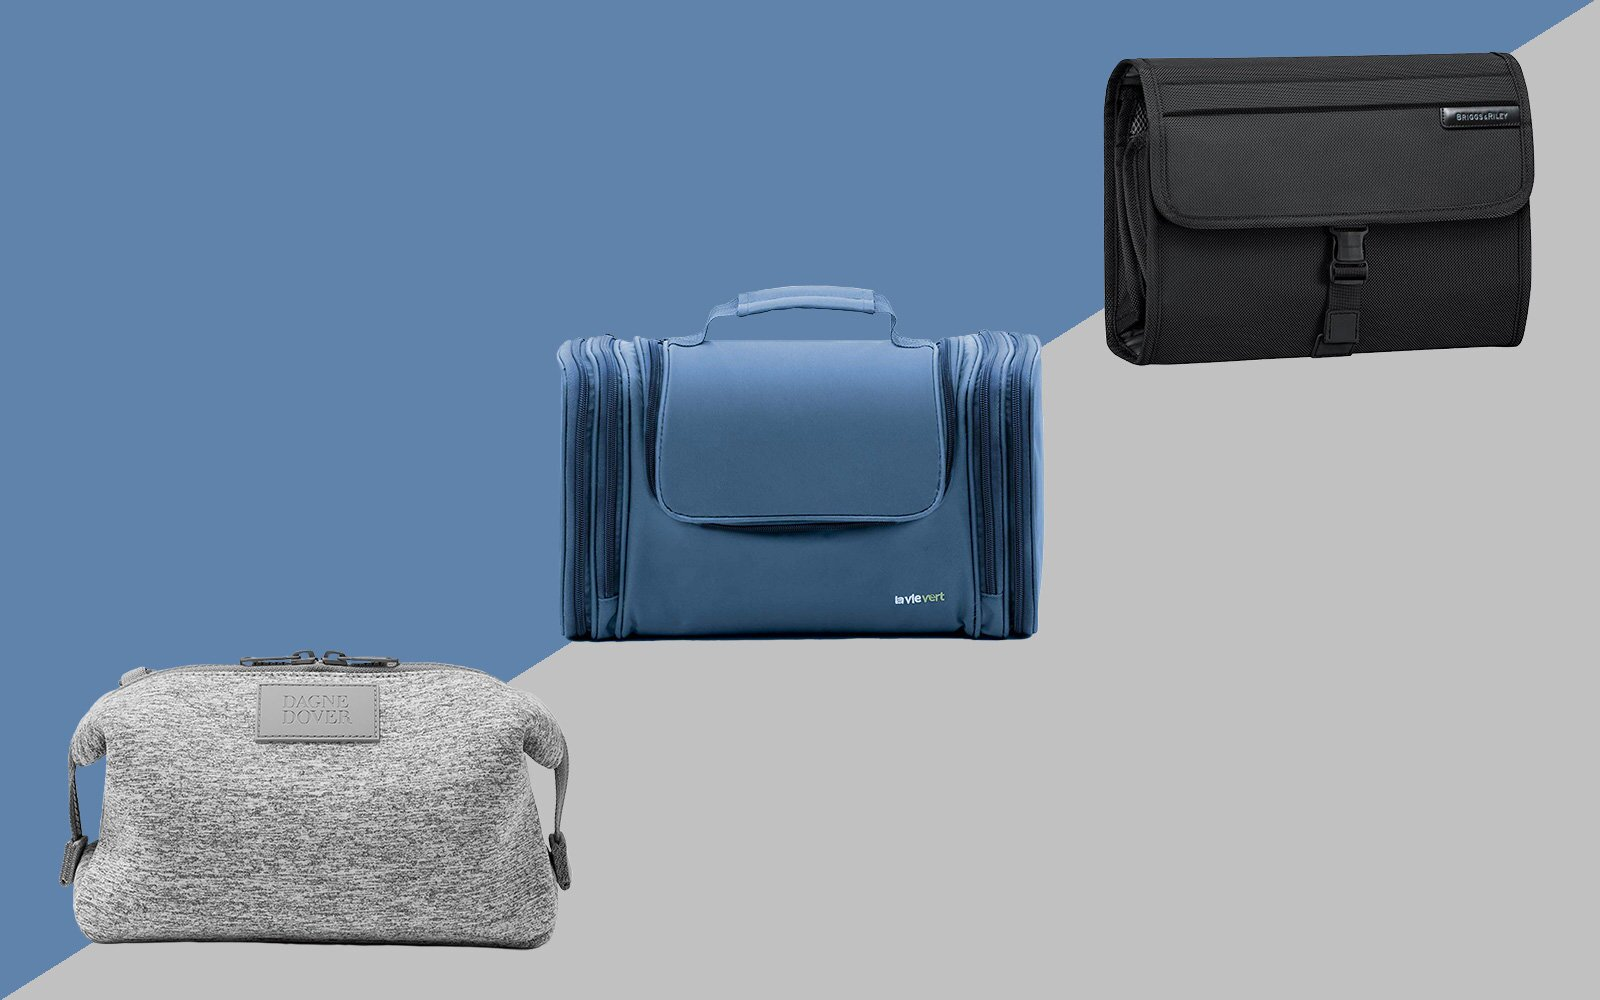 dabc9aada9caf6 The Best Toiletry Bags, According to Travel Editors | Travel + Leisure